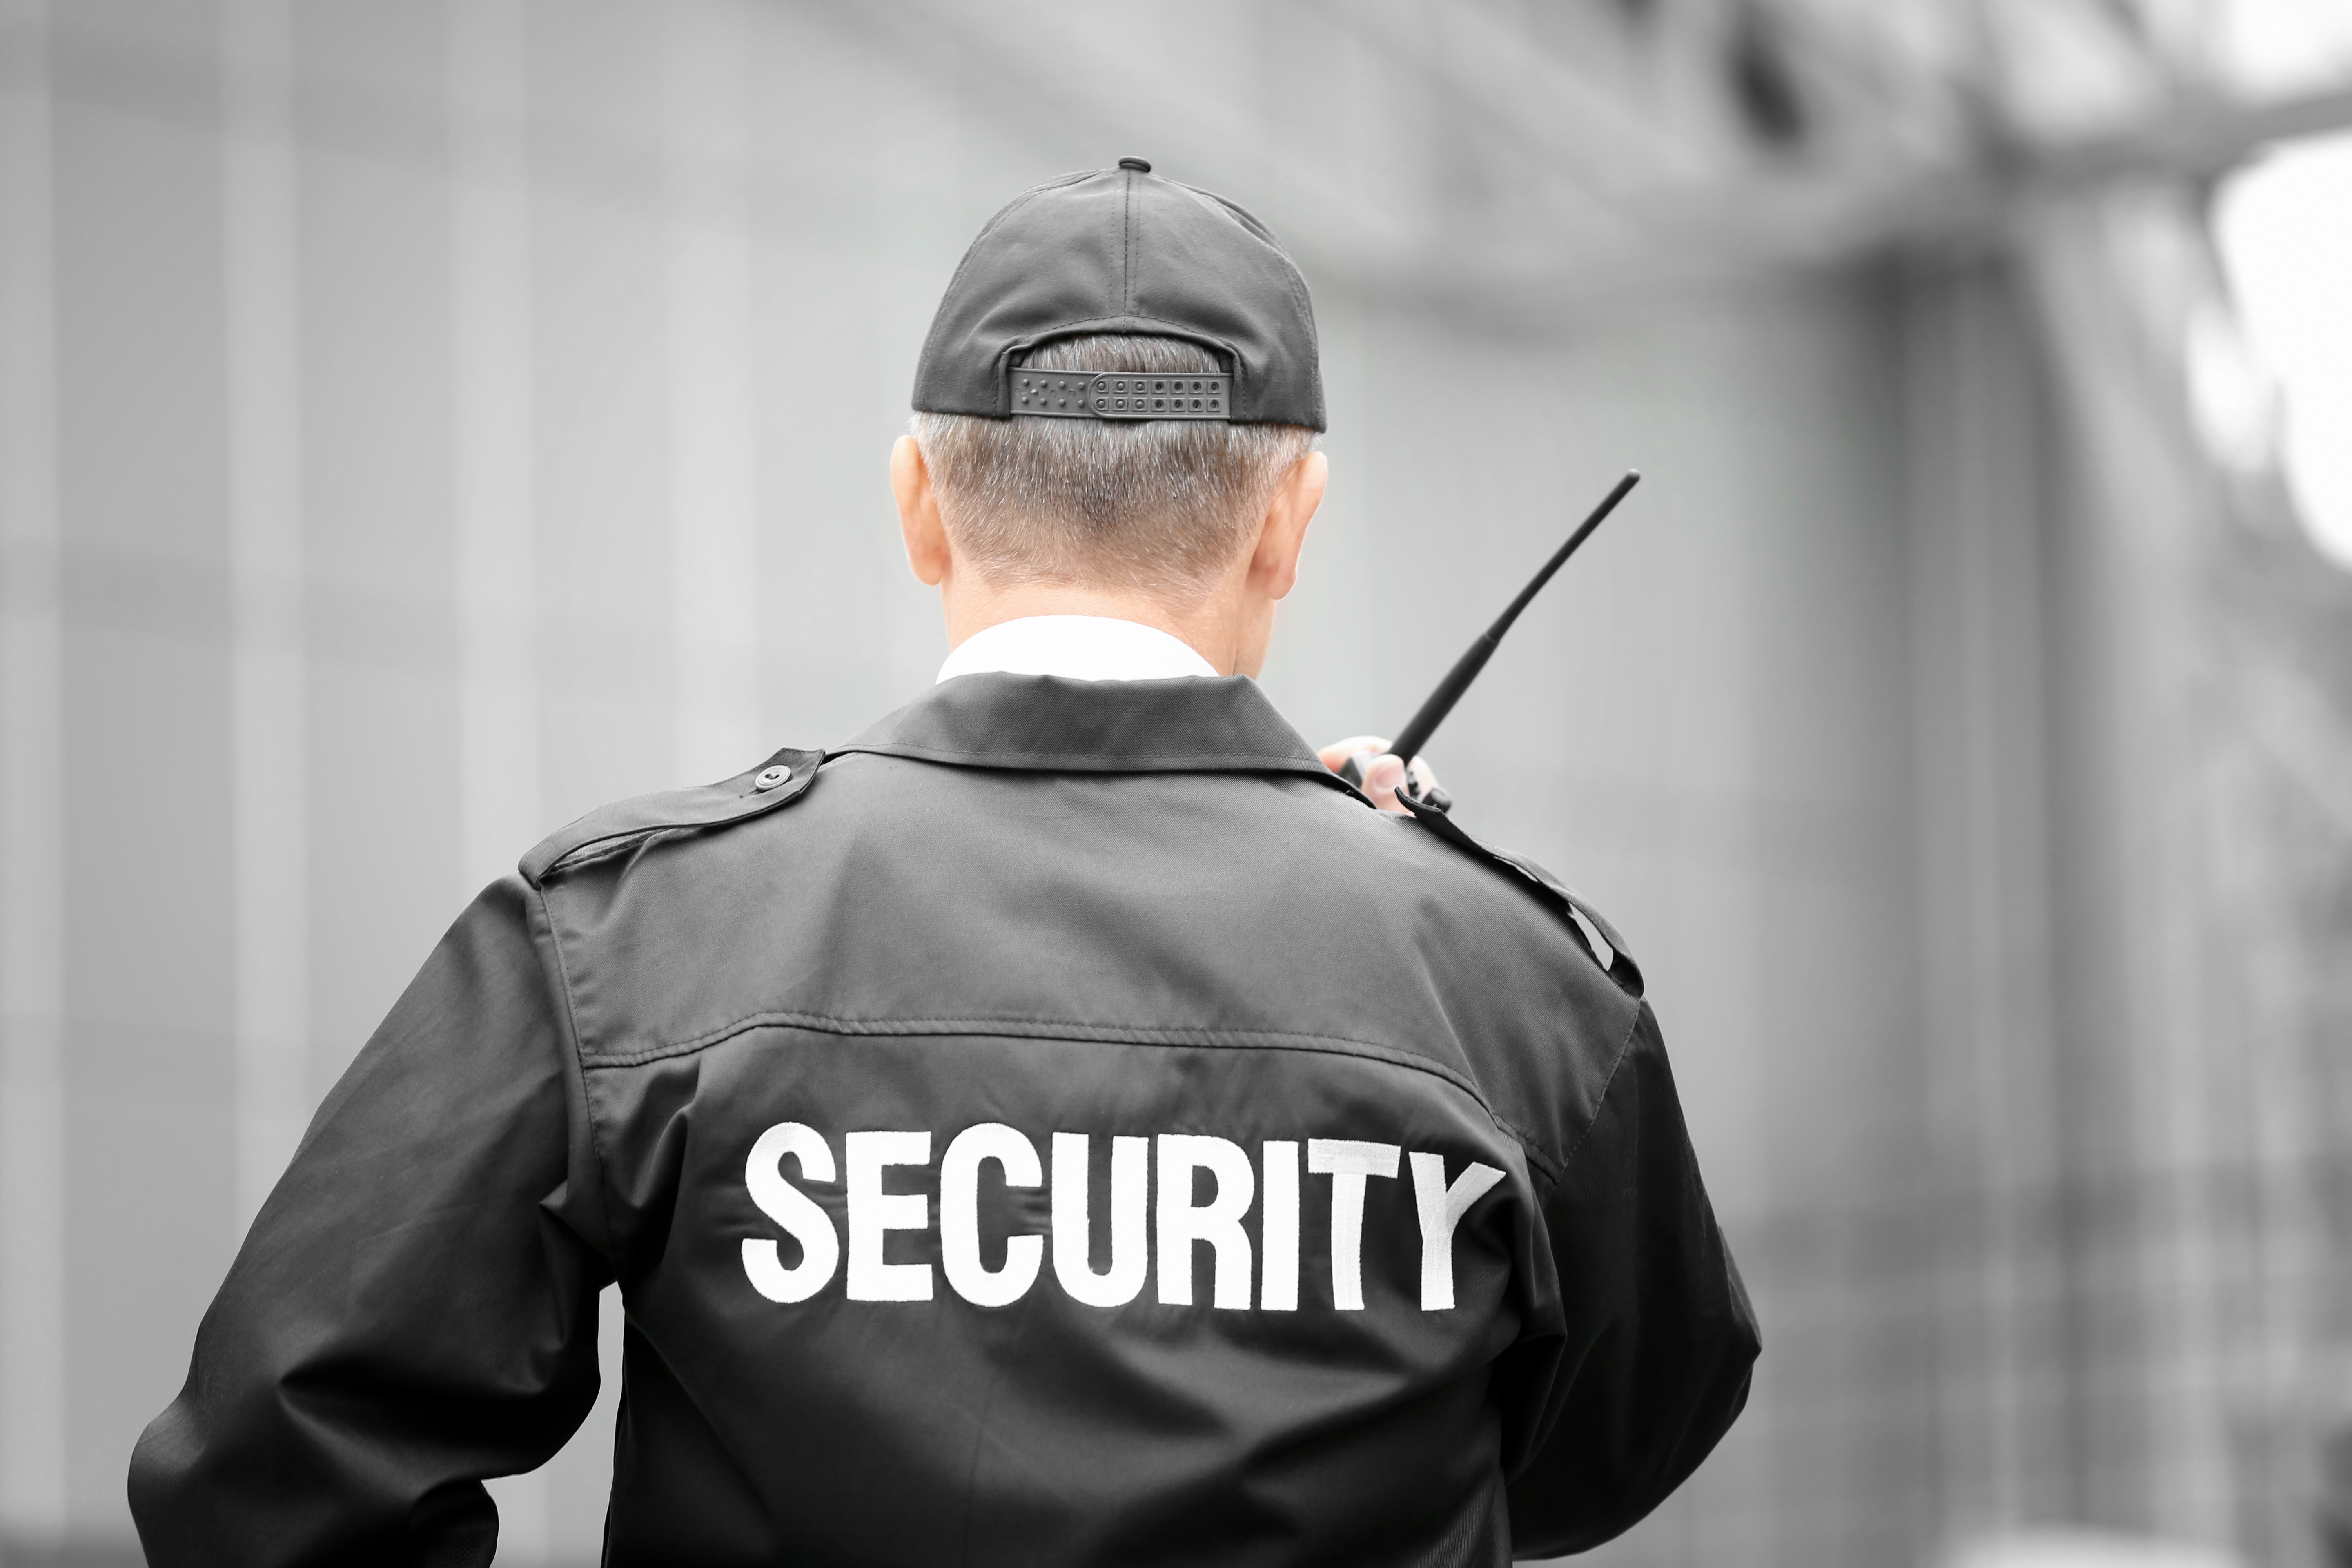 Regulation of private security service providers